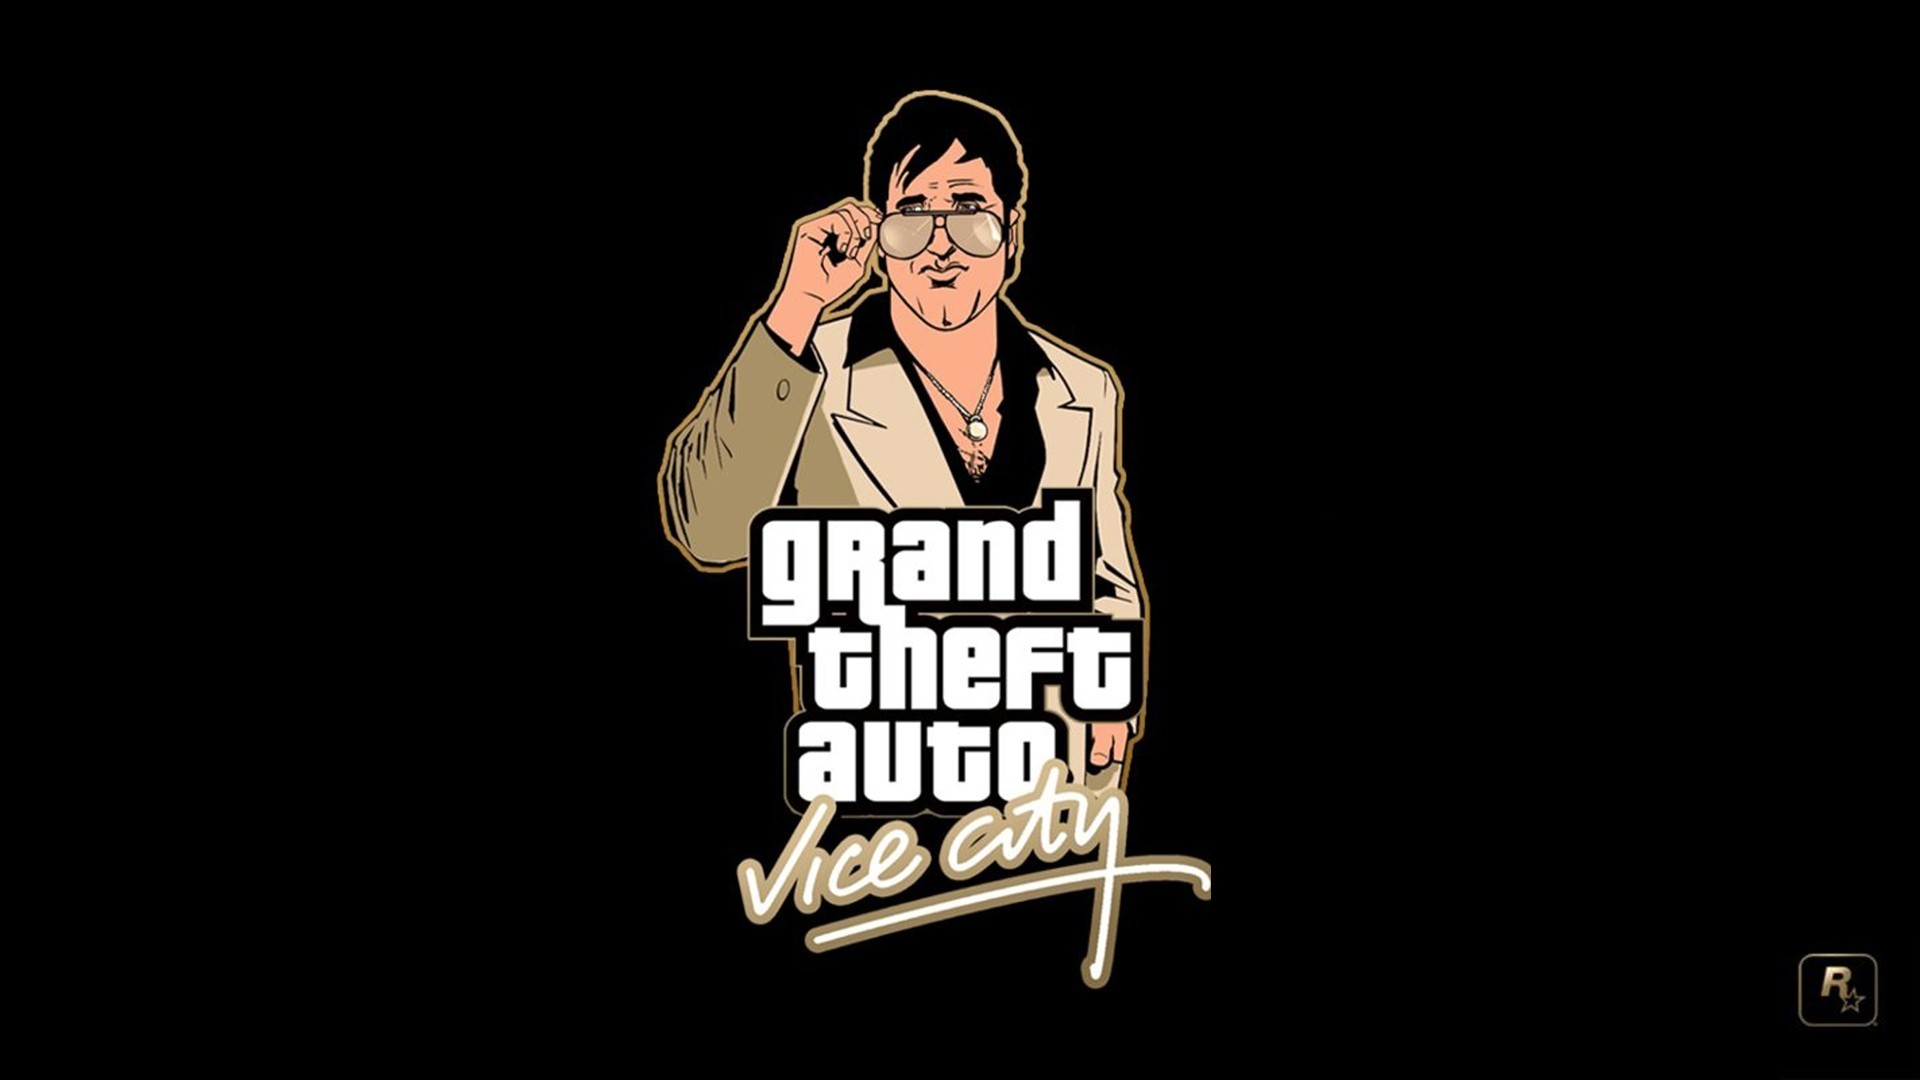 1920x1080 Grand Theft Auto Vice City, Rockstar Games, PlayStation 2, Video Games